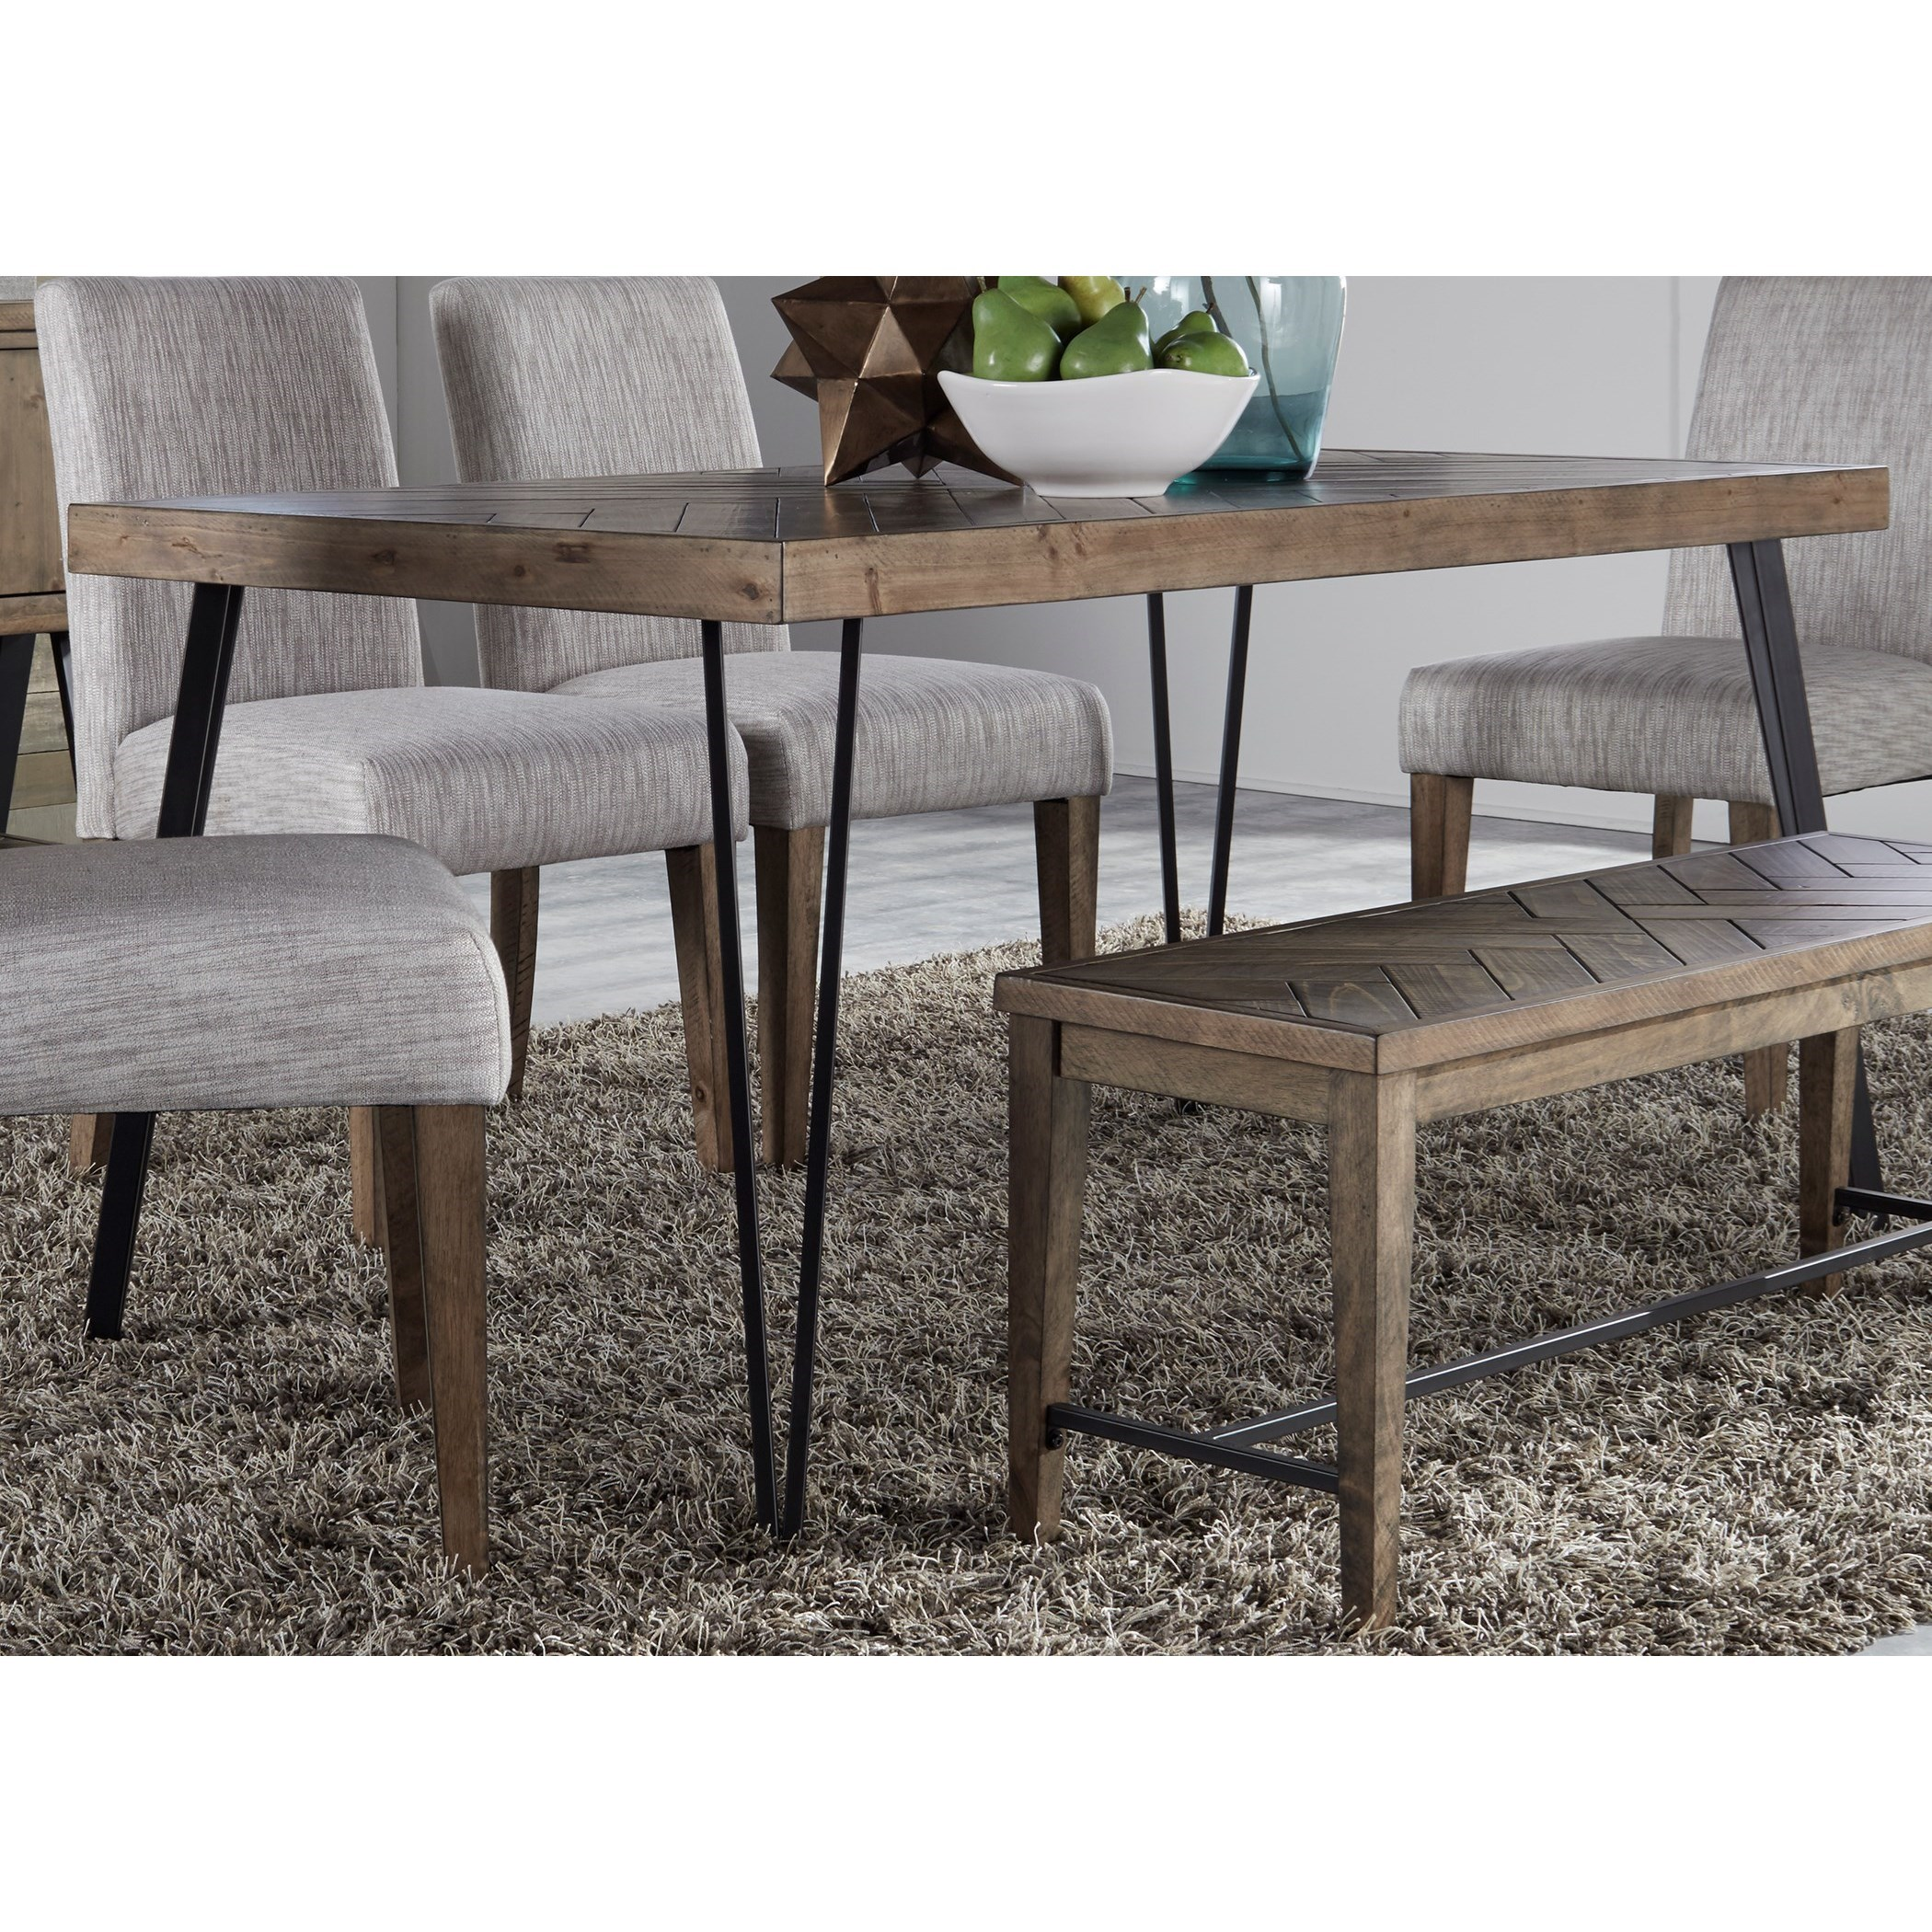 Square Rectangular Modern Dining Table Legs Industrial: Contemporary Rectangular Leg Dining Table With Angled